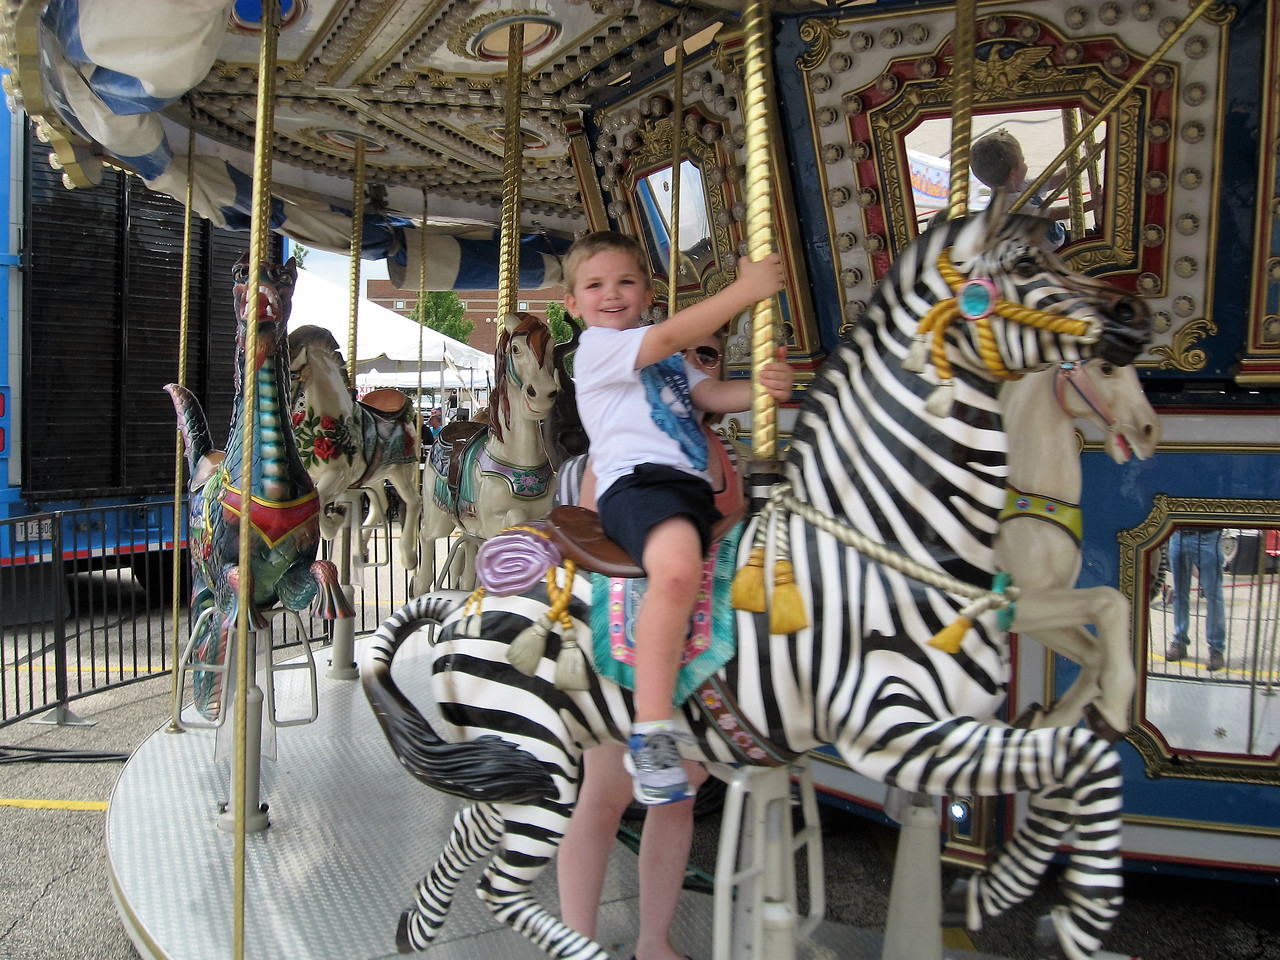 BOB SANDRICK / GAZETTE Caleb Langos, 5, of Wadsworth shows his excitement while riding the merry-go-round Saturday at the 2017 Summer Celebration in Brunswick. His mom Lisa Langos, hidden in the photo, rides with him.